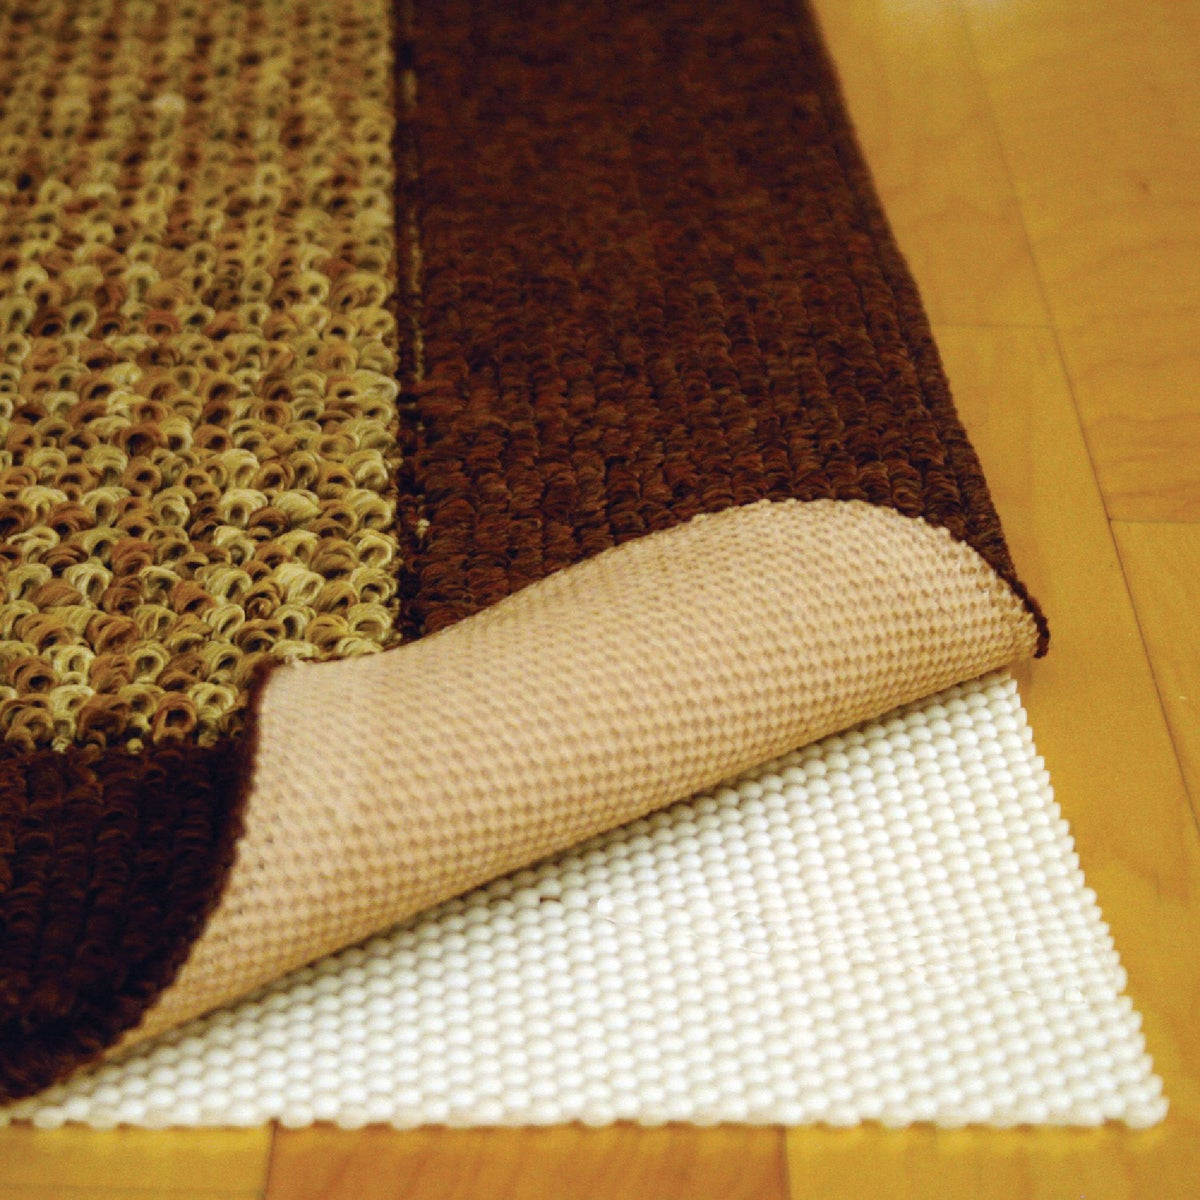 22X90 NONSLIP RUG PAD - RU004-999-022090 by Mohawk Home Products